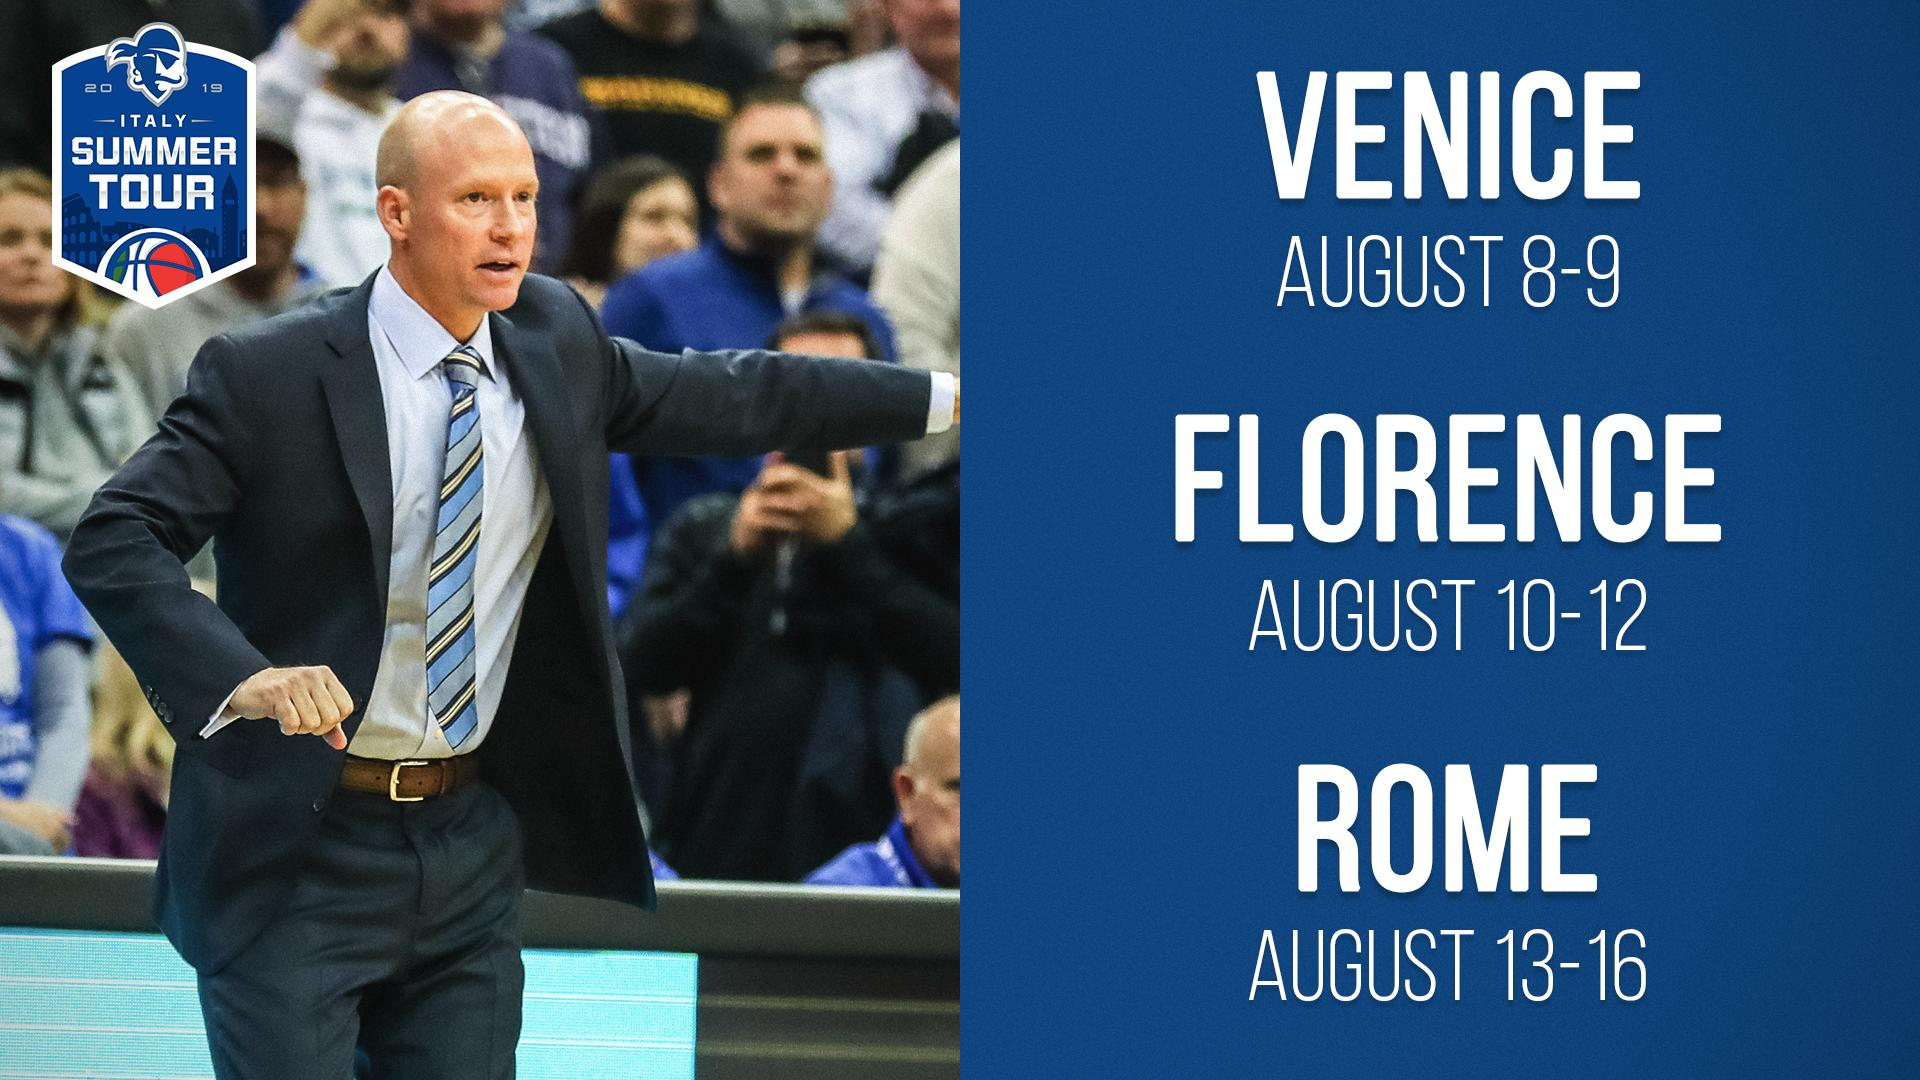 Seton Hall Pirates NCAA Basketball: Two weeks from today we'll be jumping on the red eye to Italy! 🇺🇸✈️🇮🇹...